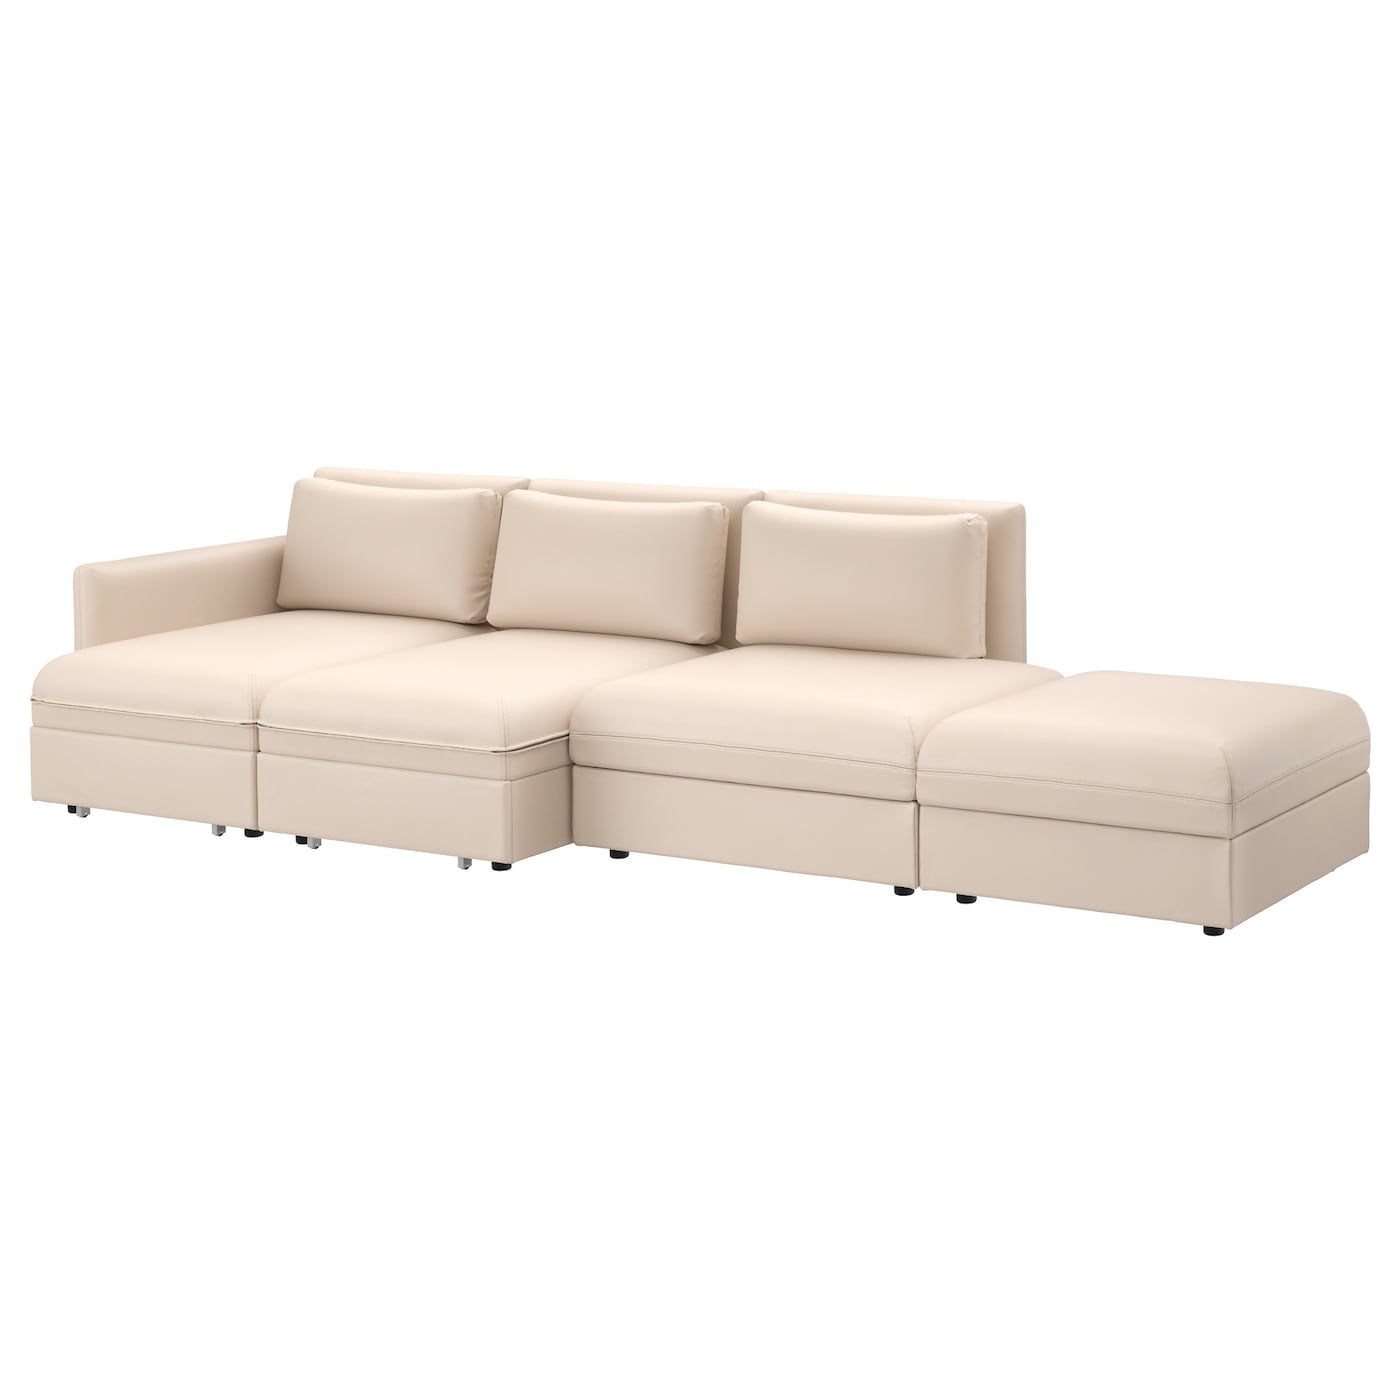 VALLENTUNA 4-seat sofa with bed Murum beige - IKEA